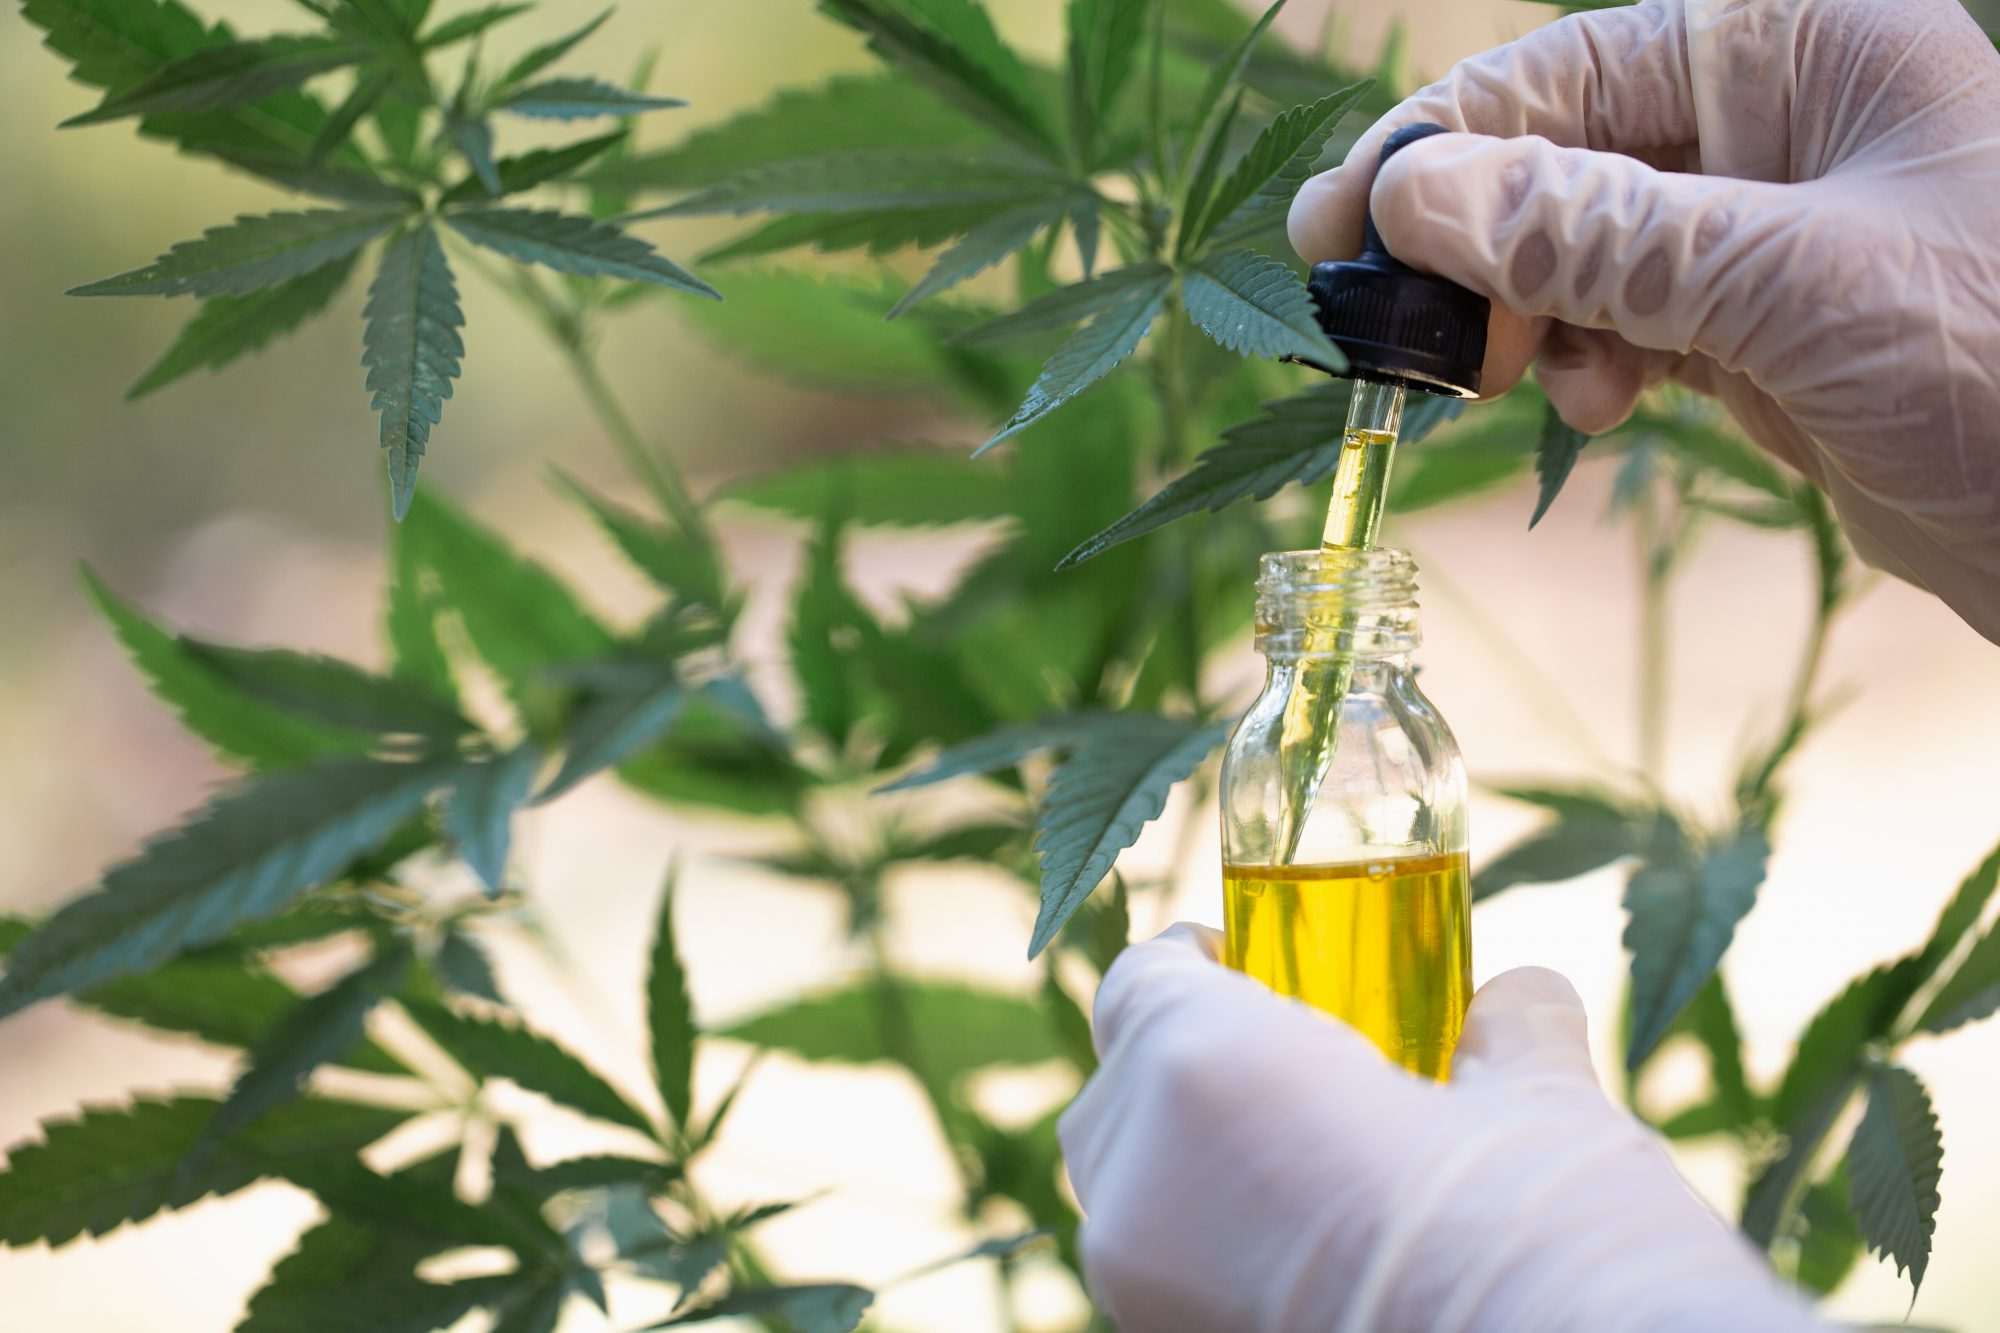 Medicine authority can't recommend CBD medicines to NHS